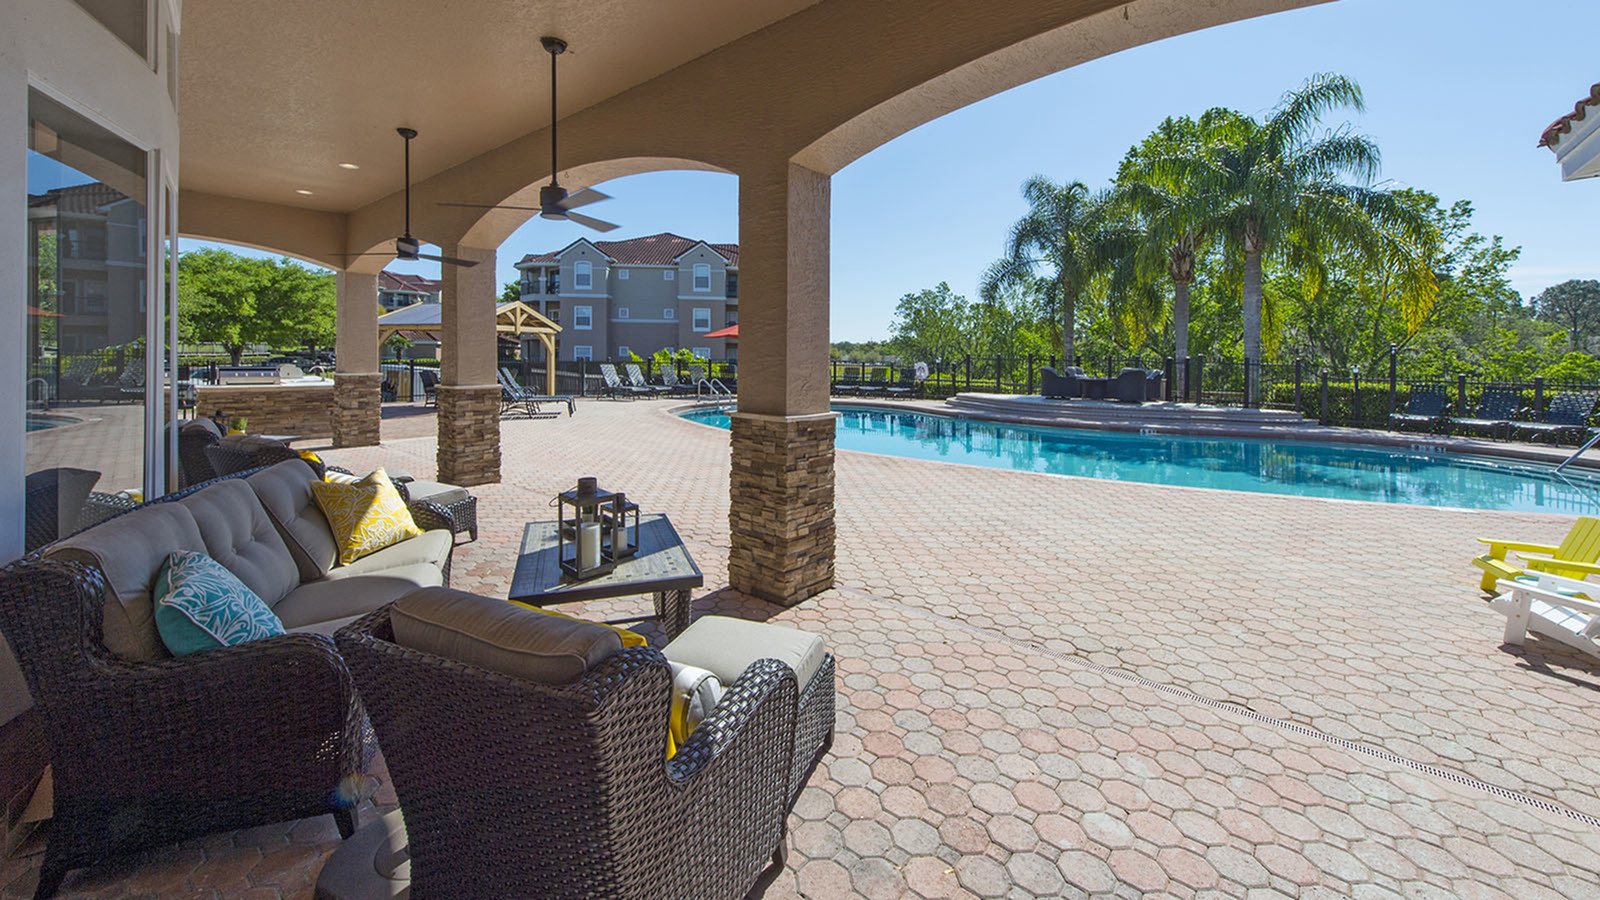 Outdoor patio furniture with pool and trees in background.